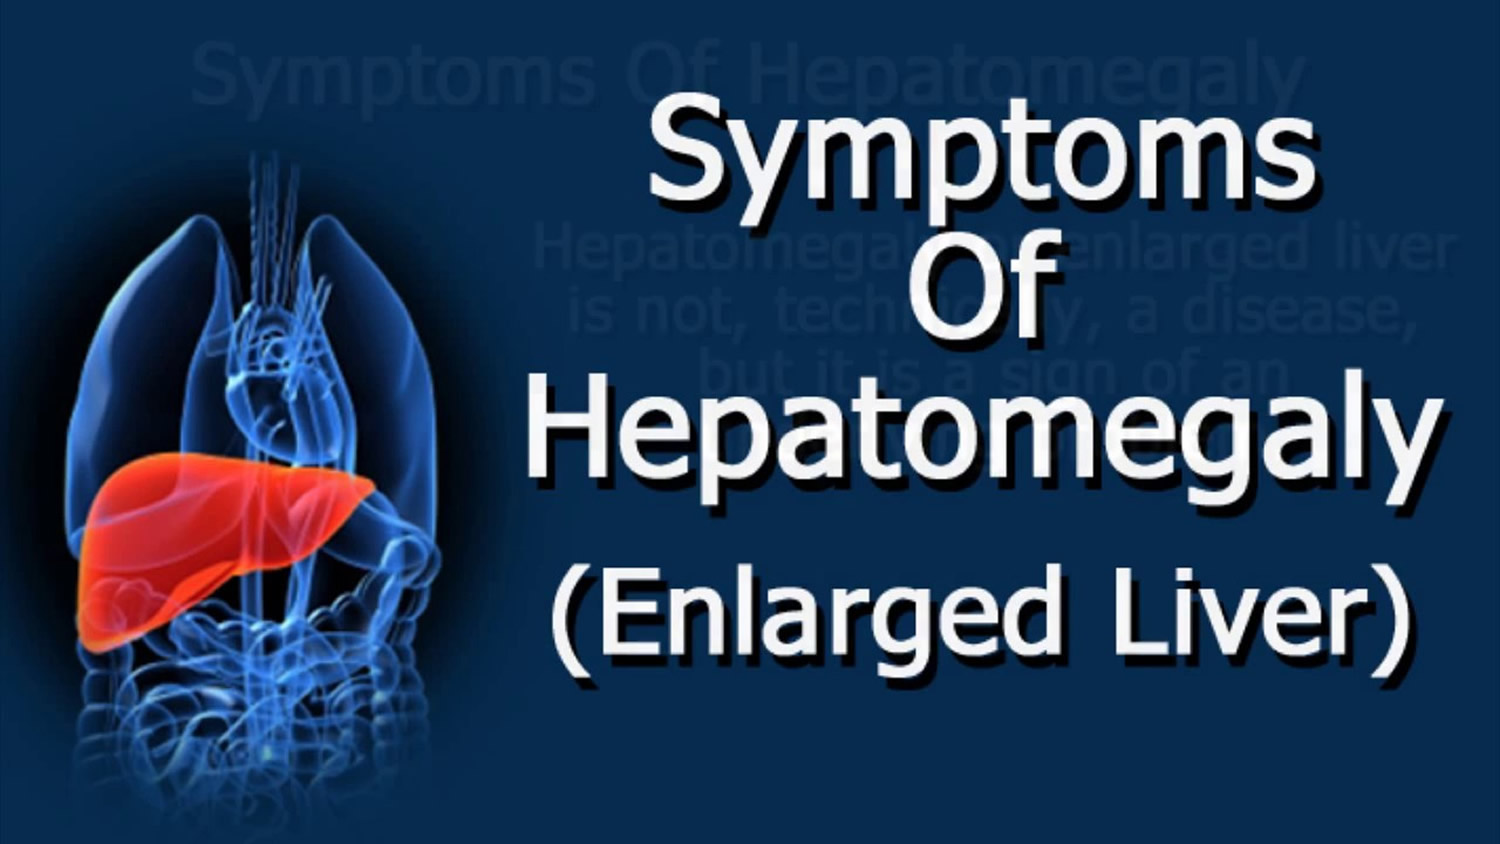 The liver is enlarged. Causes of hepatomegaly